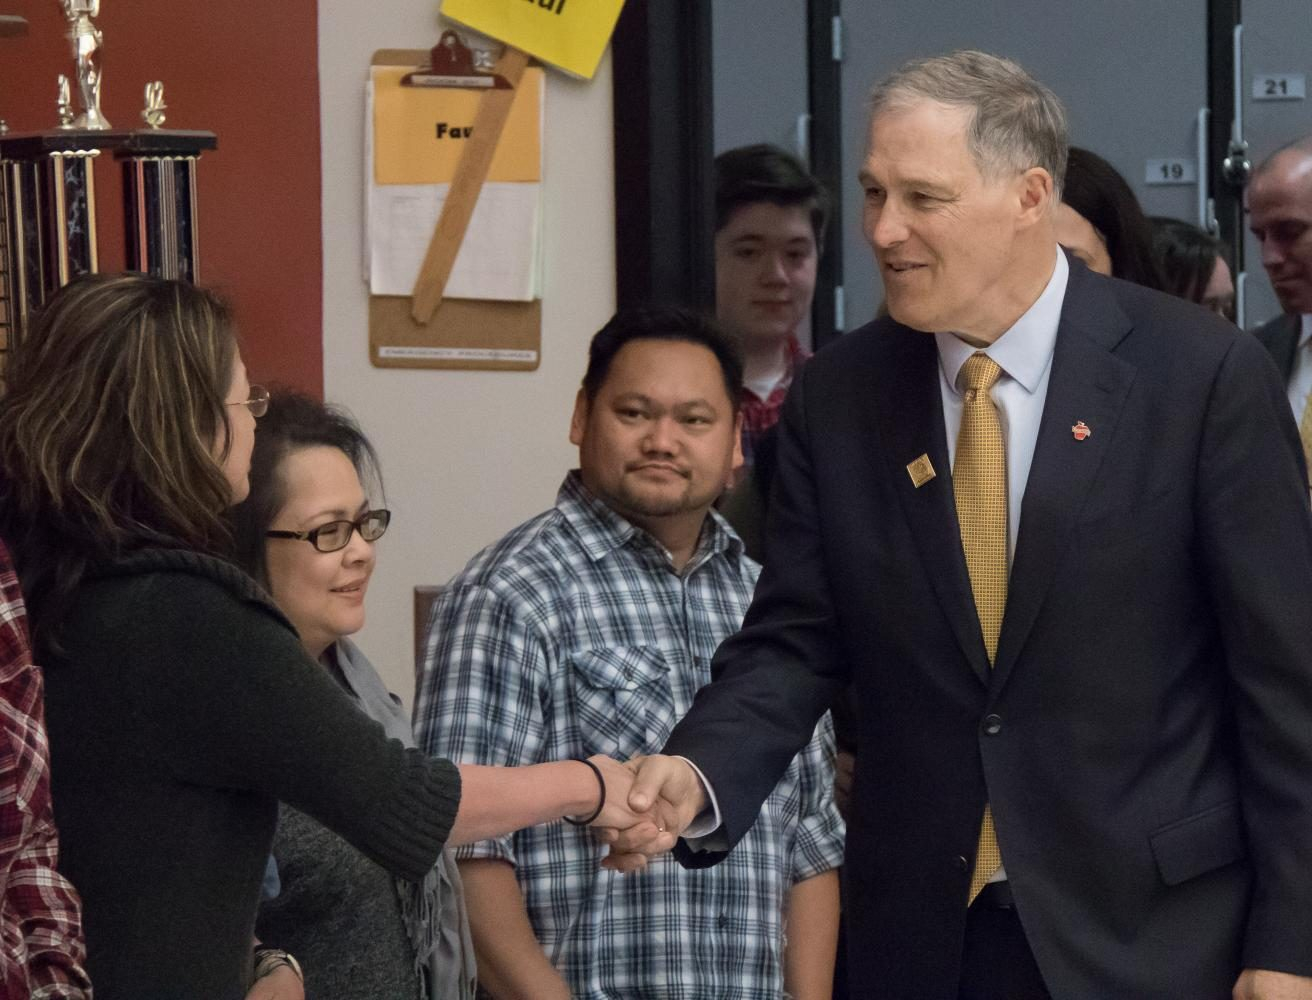 As he enters the band room, Governor Inslee shakes hands with parents of MTHS students.